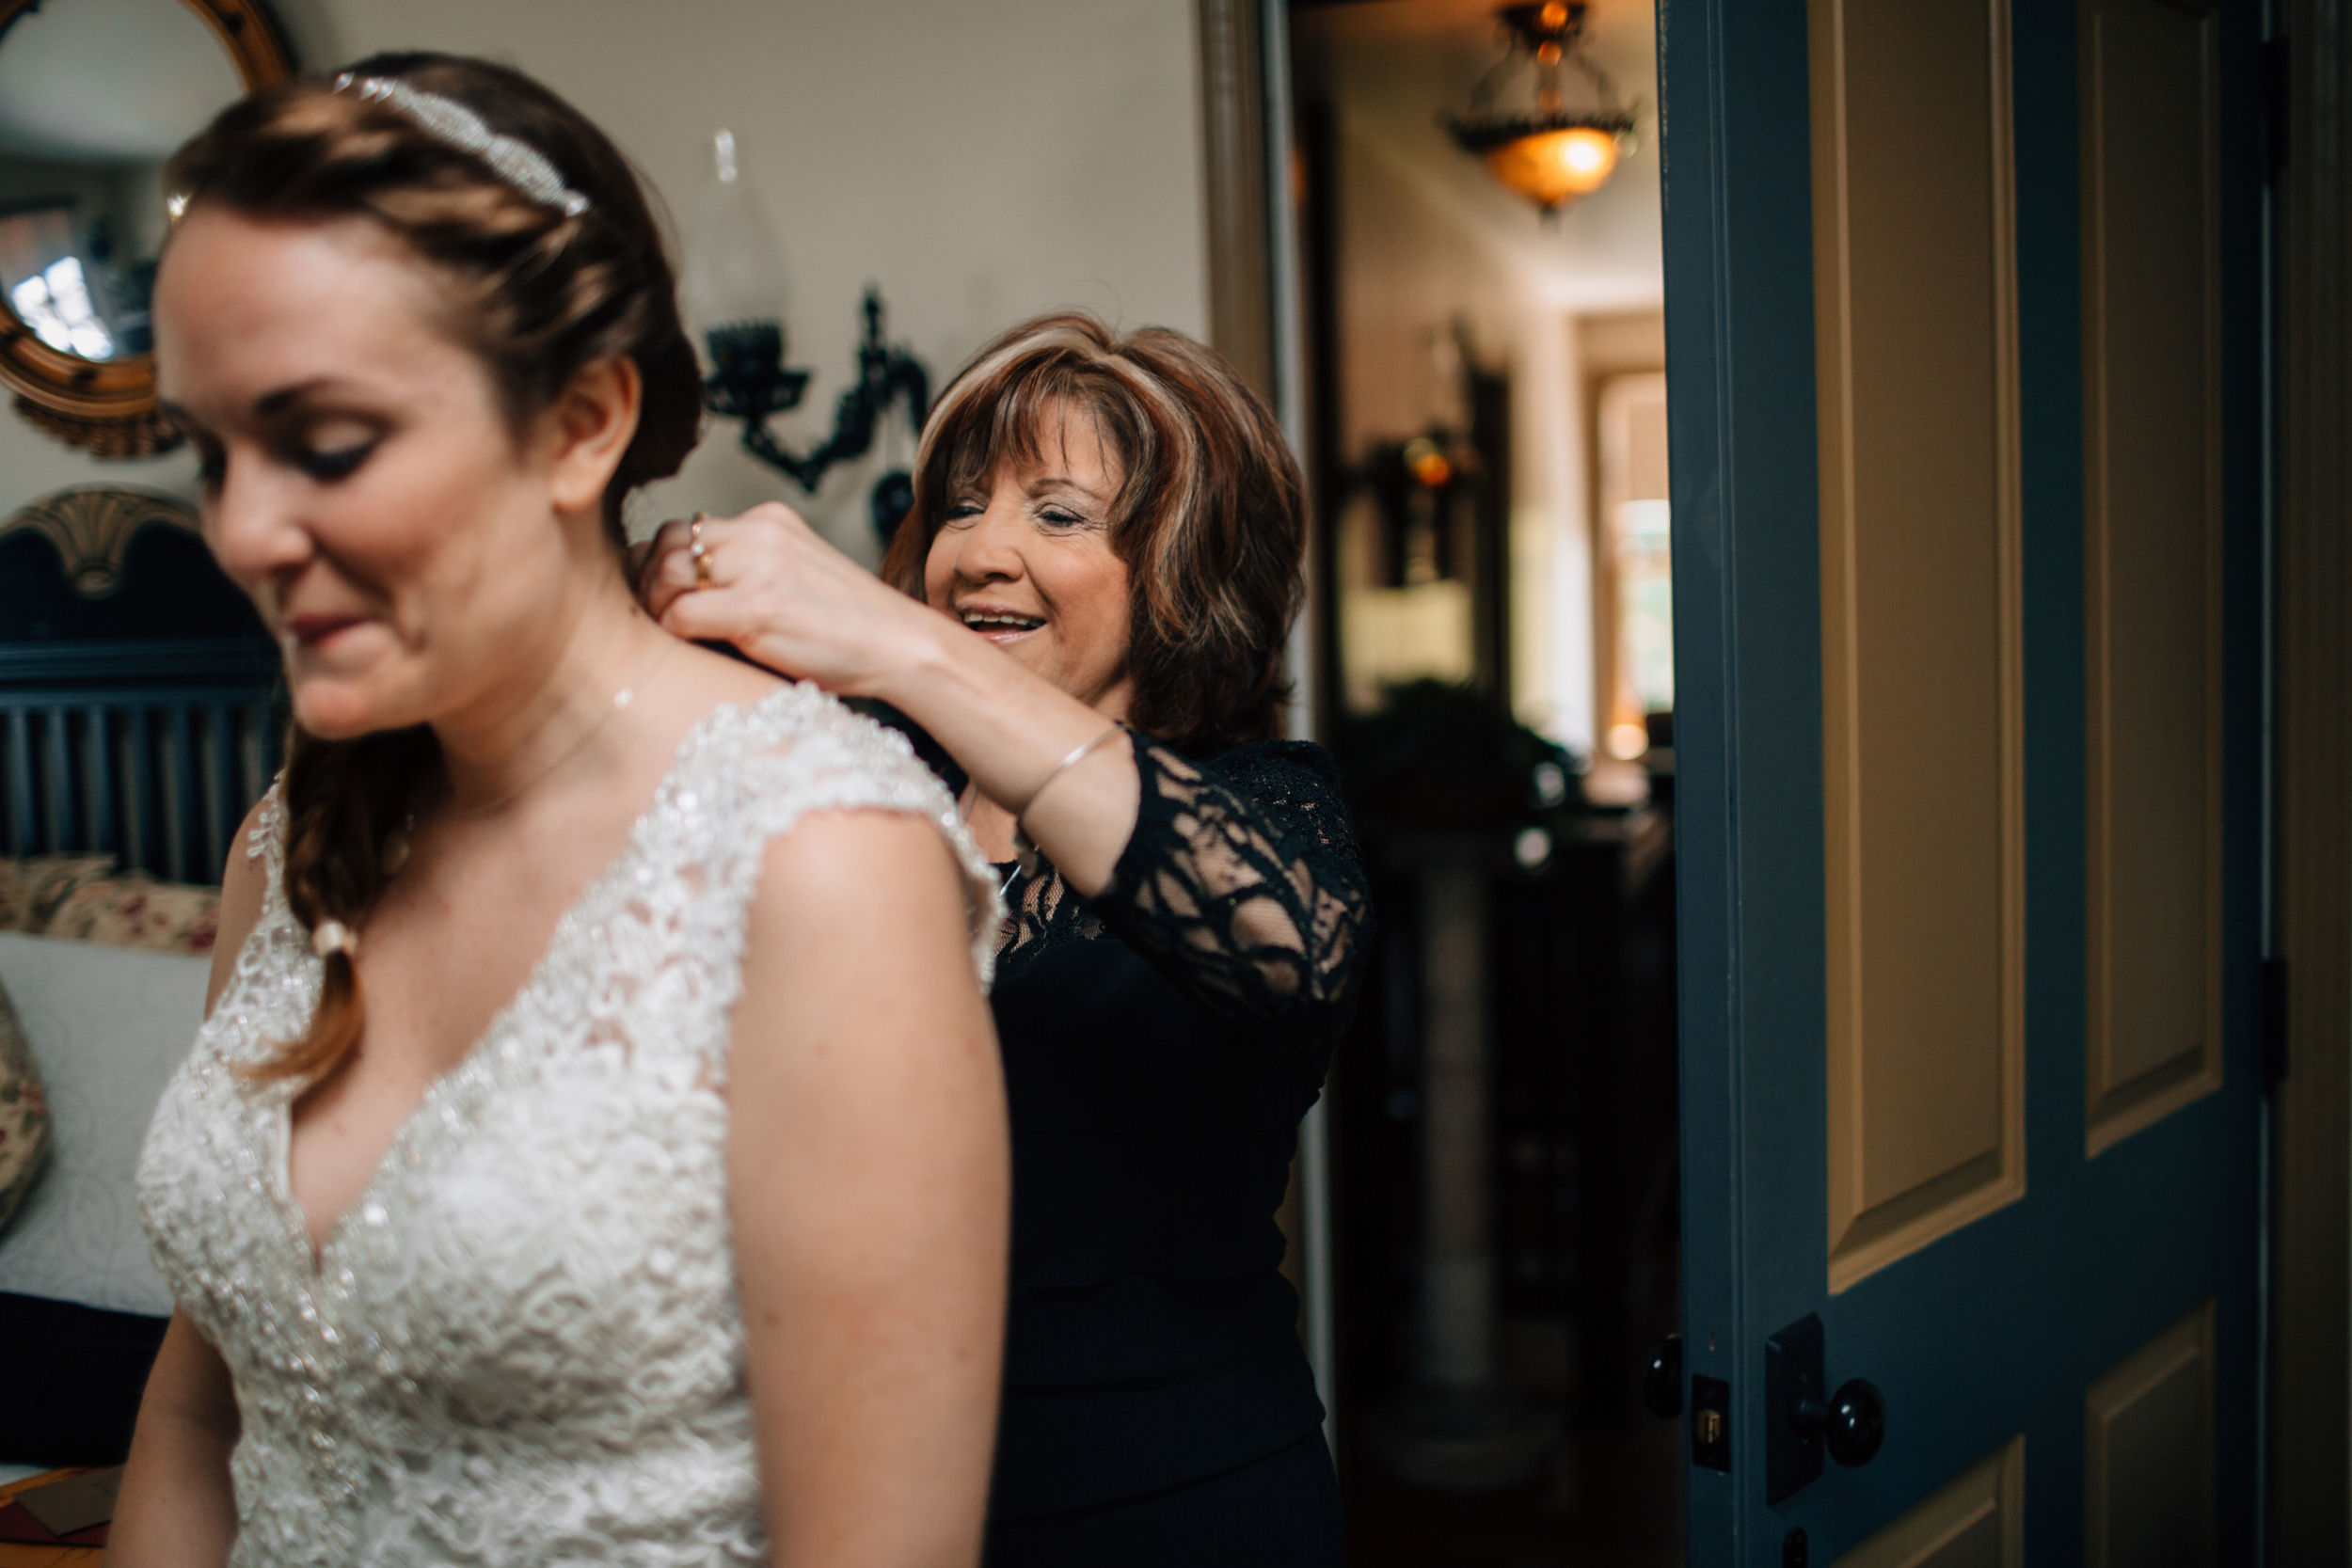 KELLIandBRADweddingJUNE2015 - gettingready (47 of 66).jpg